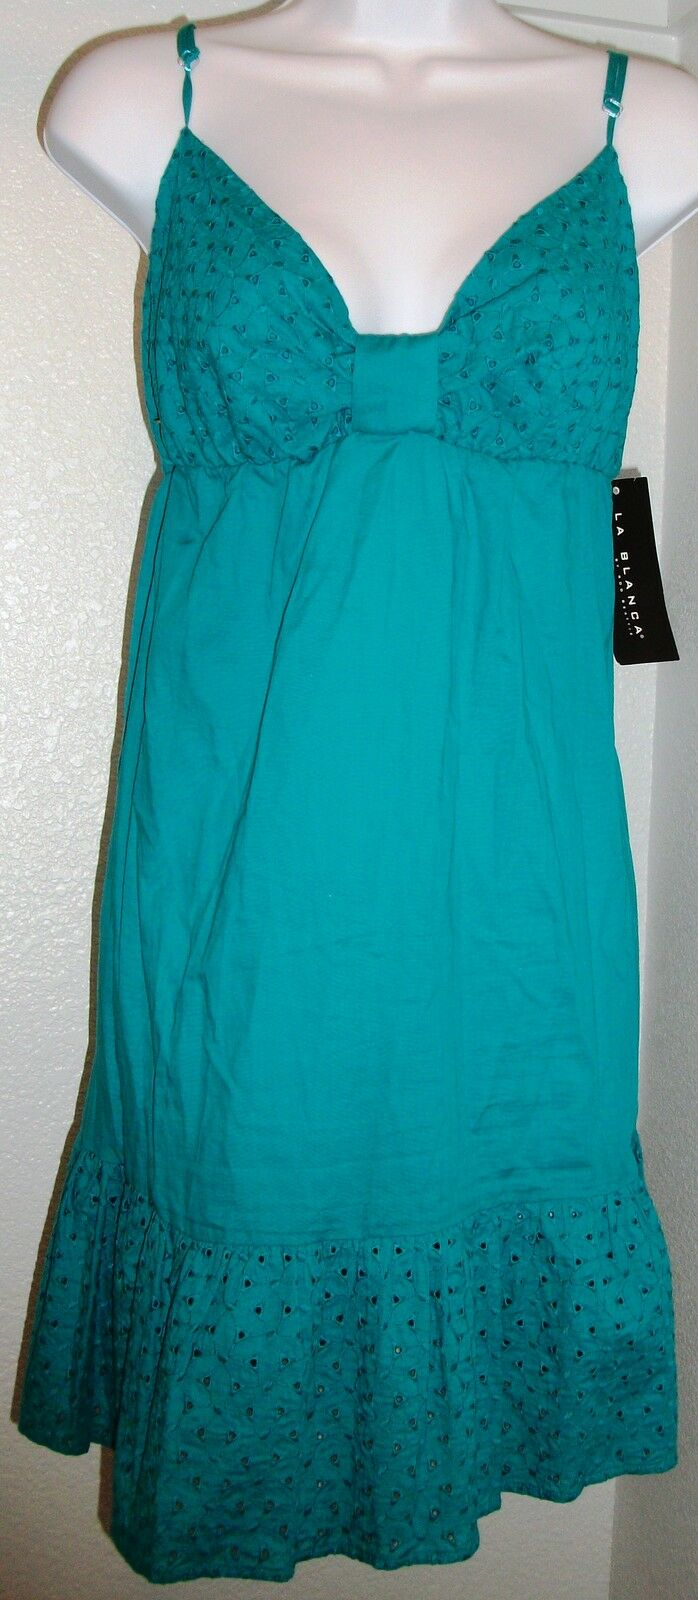 NWT Genuine LA whiteA teal adjustable straps cover up dress, size L